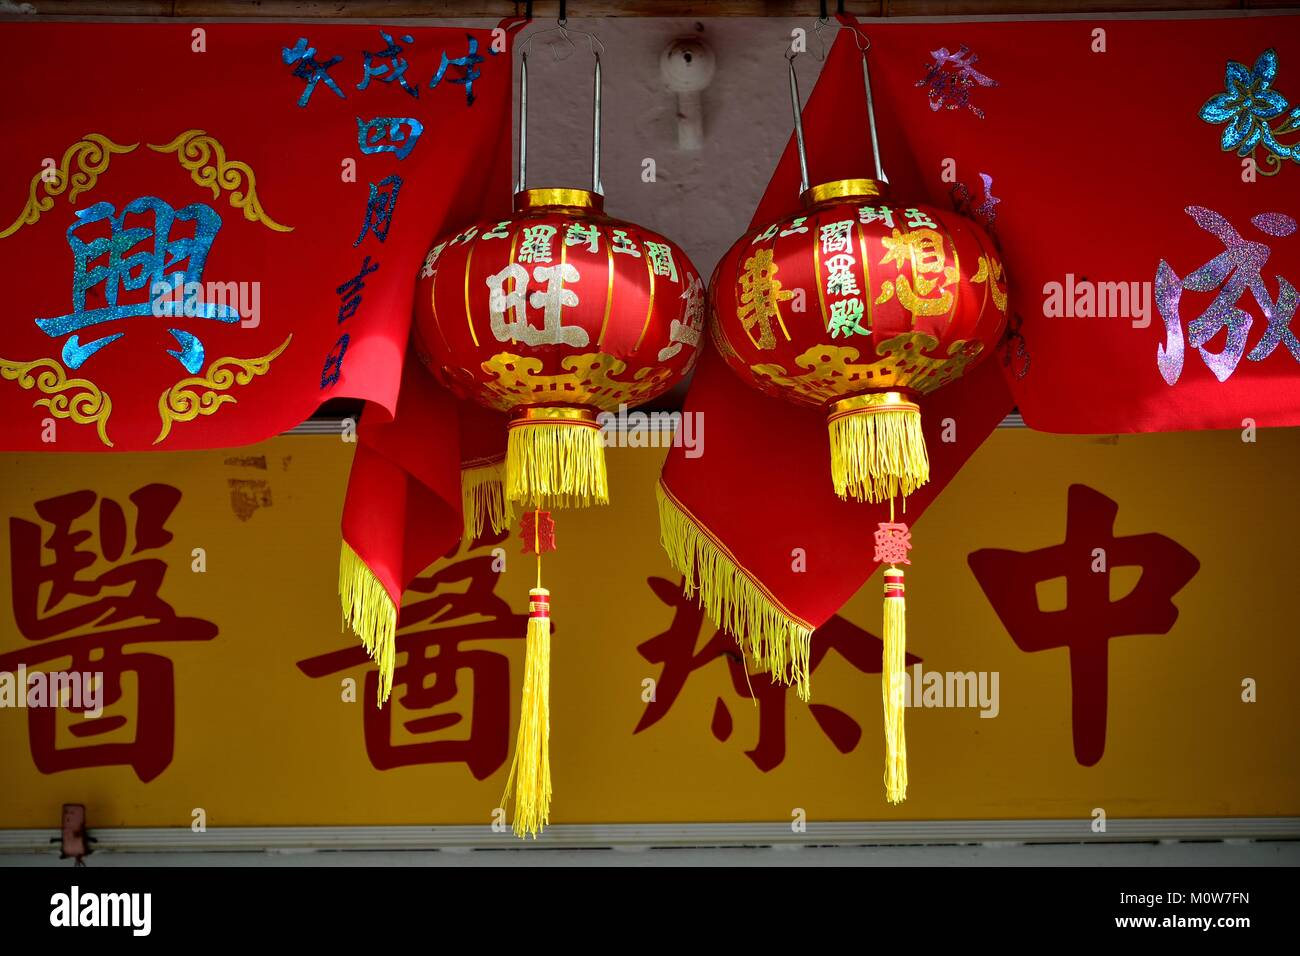 Red and gold lanterns with banners celebrating Chinese Lunar New Year in Geylang, Singapore - Stock Image